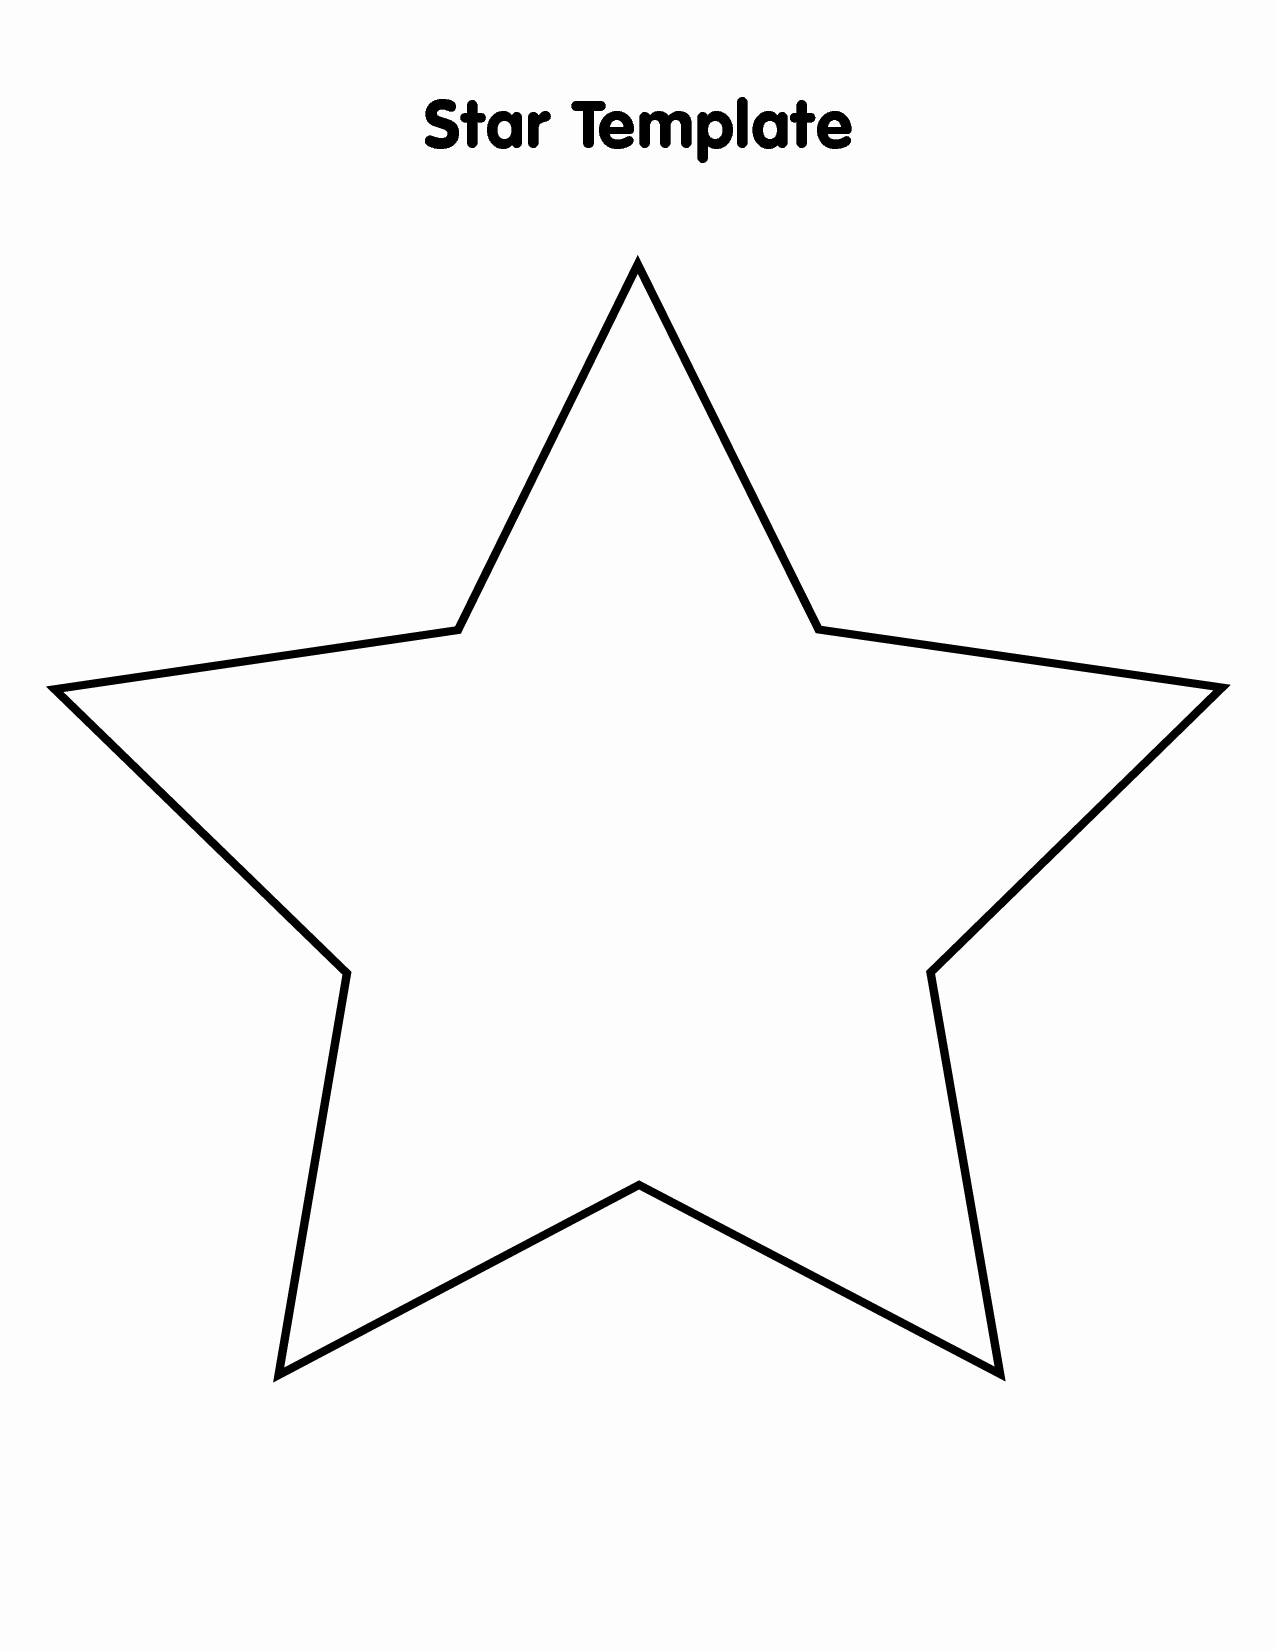 Star Stencil Printable Inspirational Free Star Template Download Free Clip Art Free Clip Art